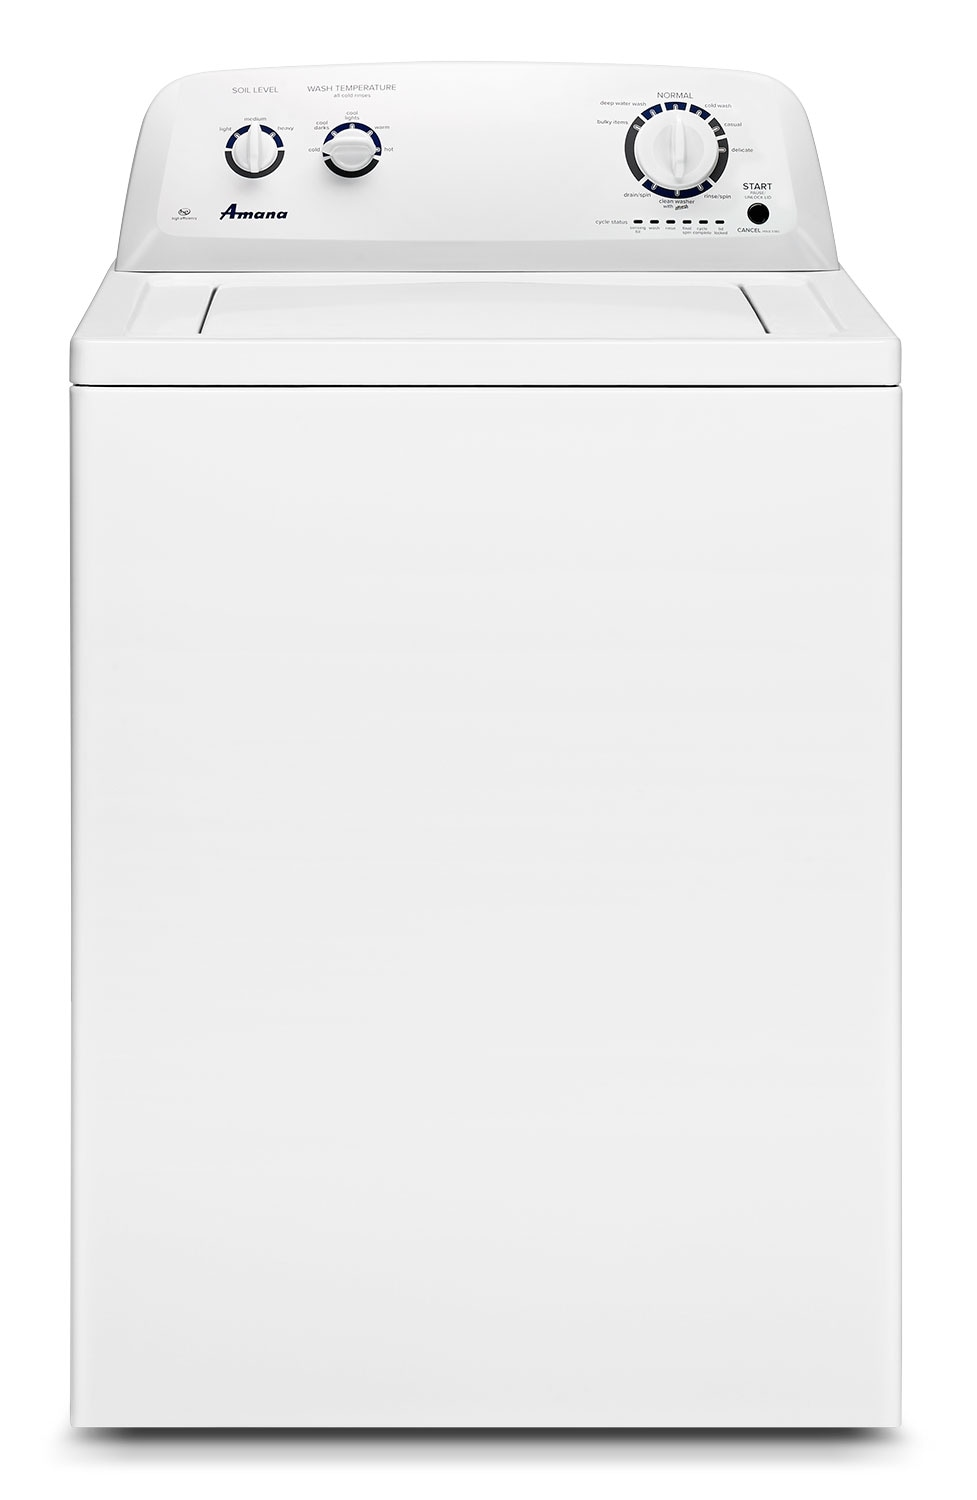 Amana White Top-Load Washer (4.0 Cu. Ft. IEC) - NTW4605EW